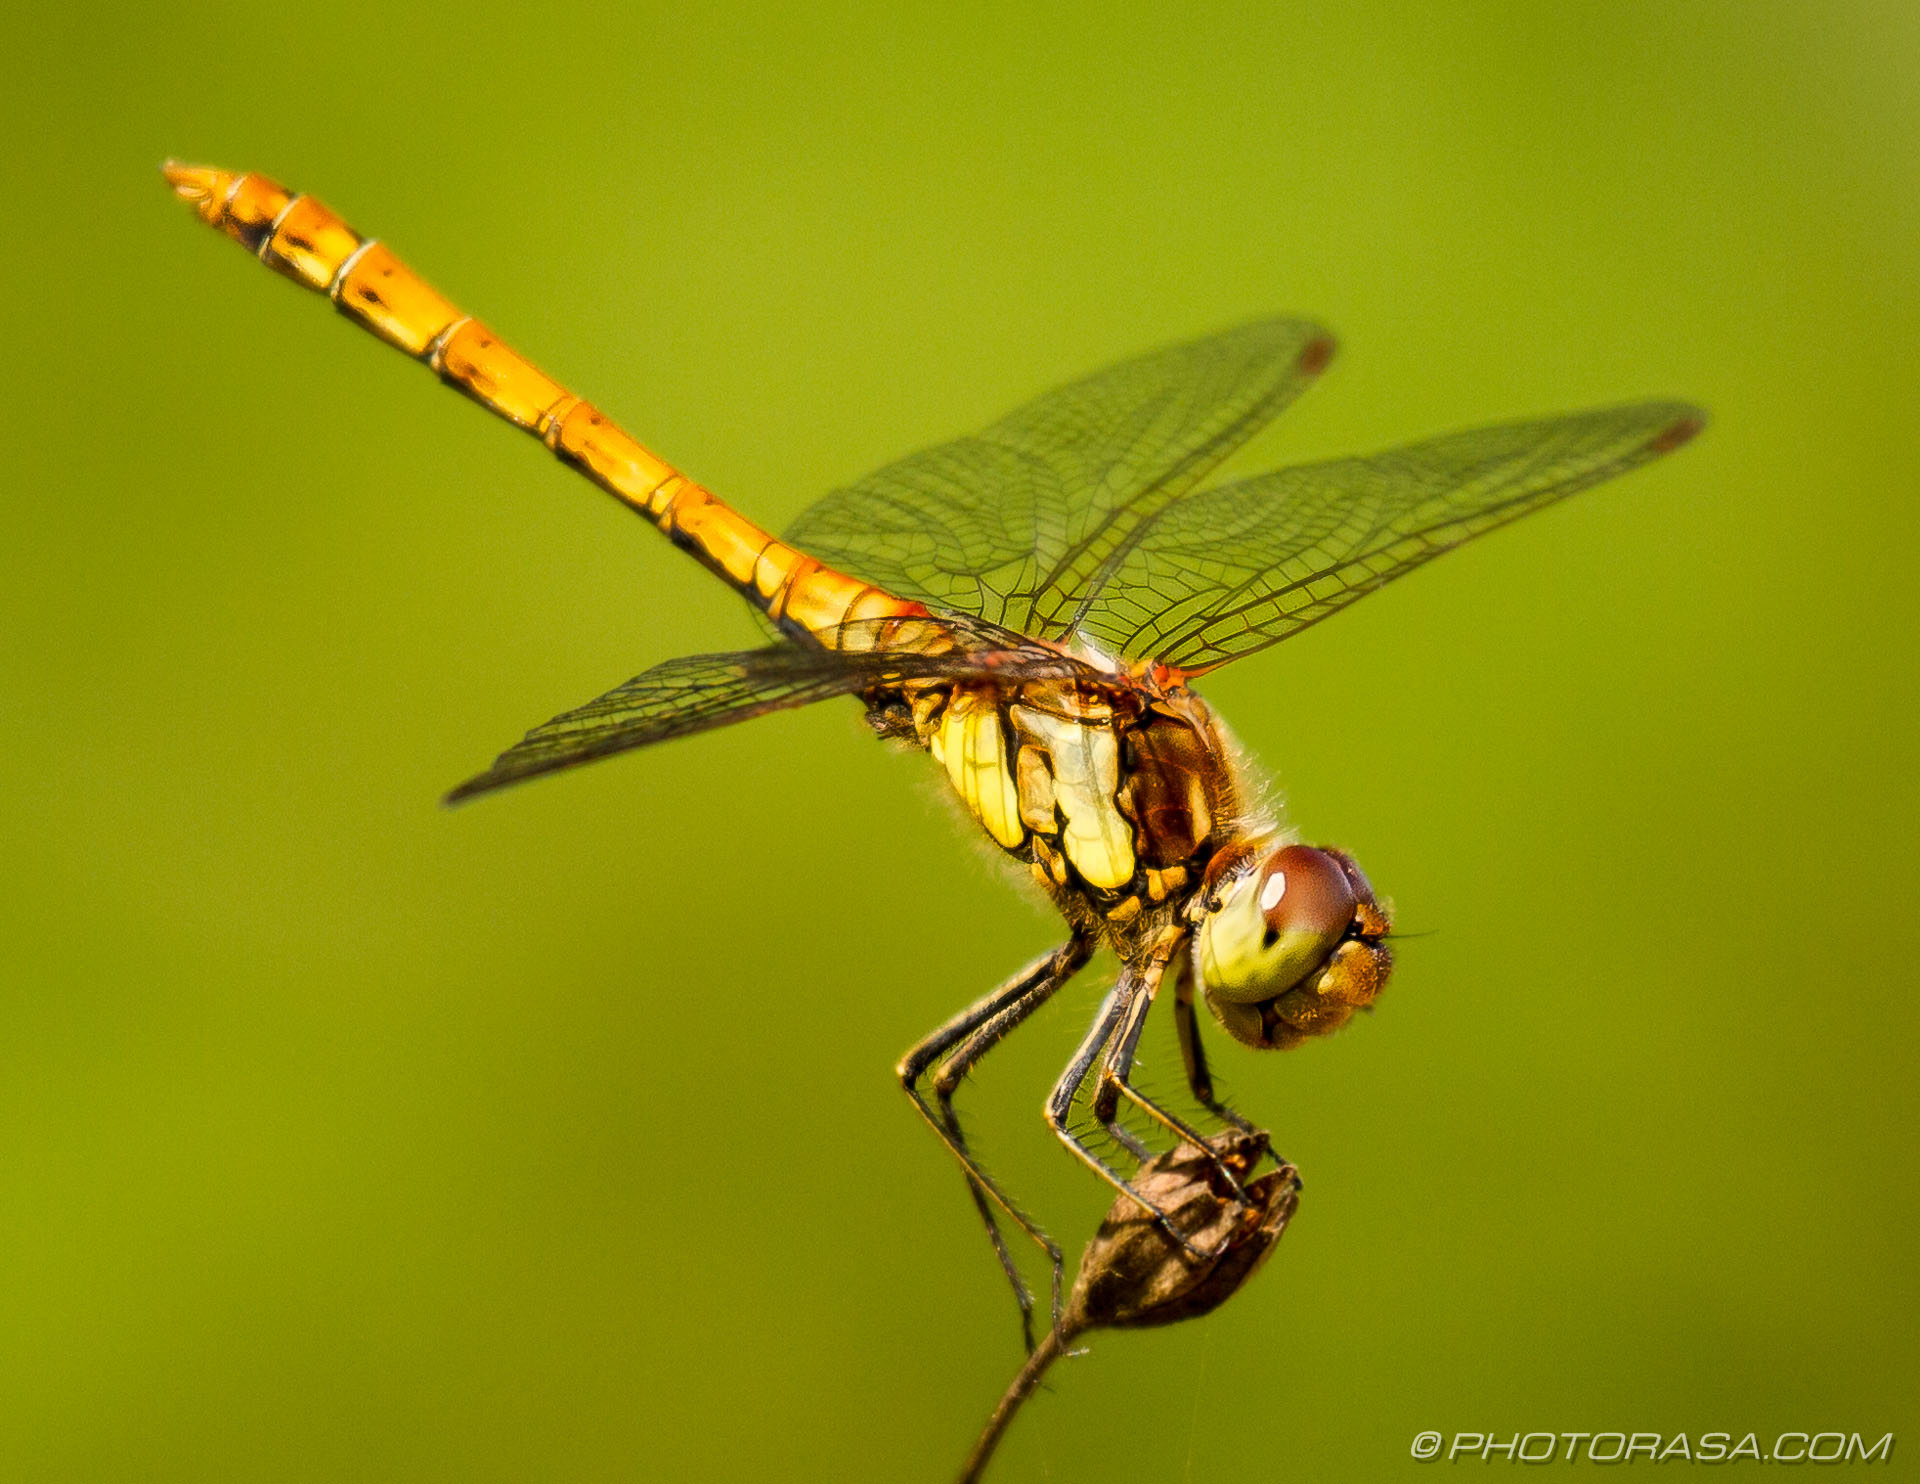 http://photorasa.com/dragonflies/female-common-darter/